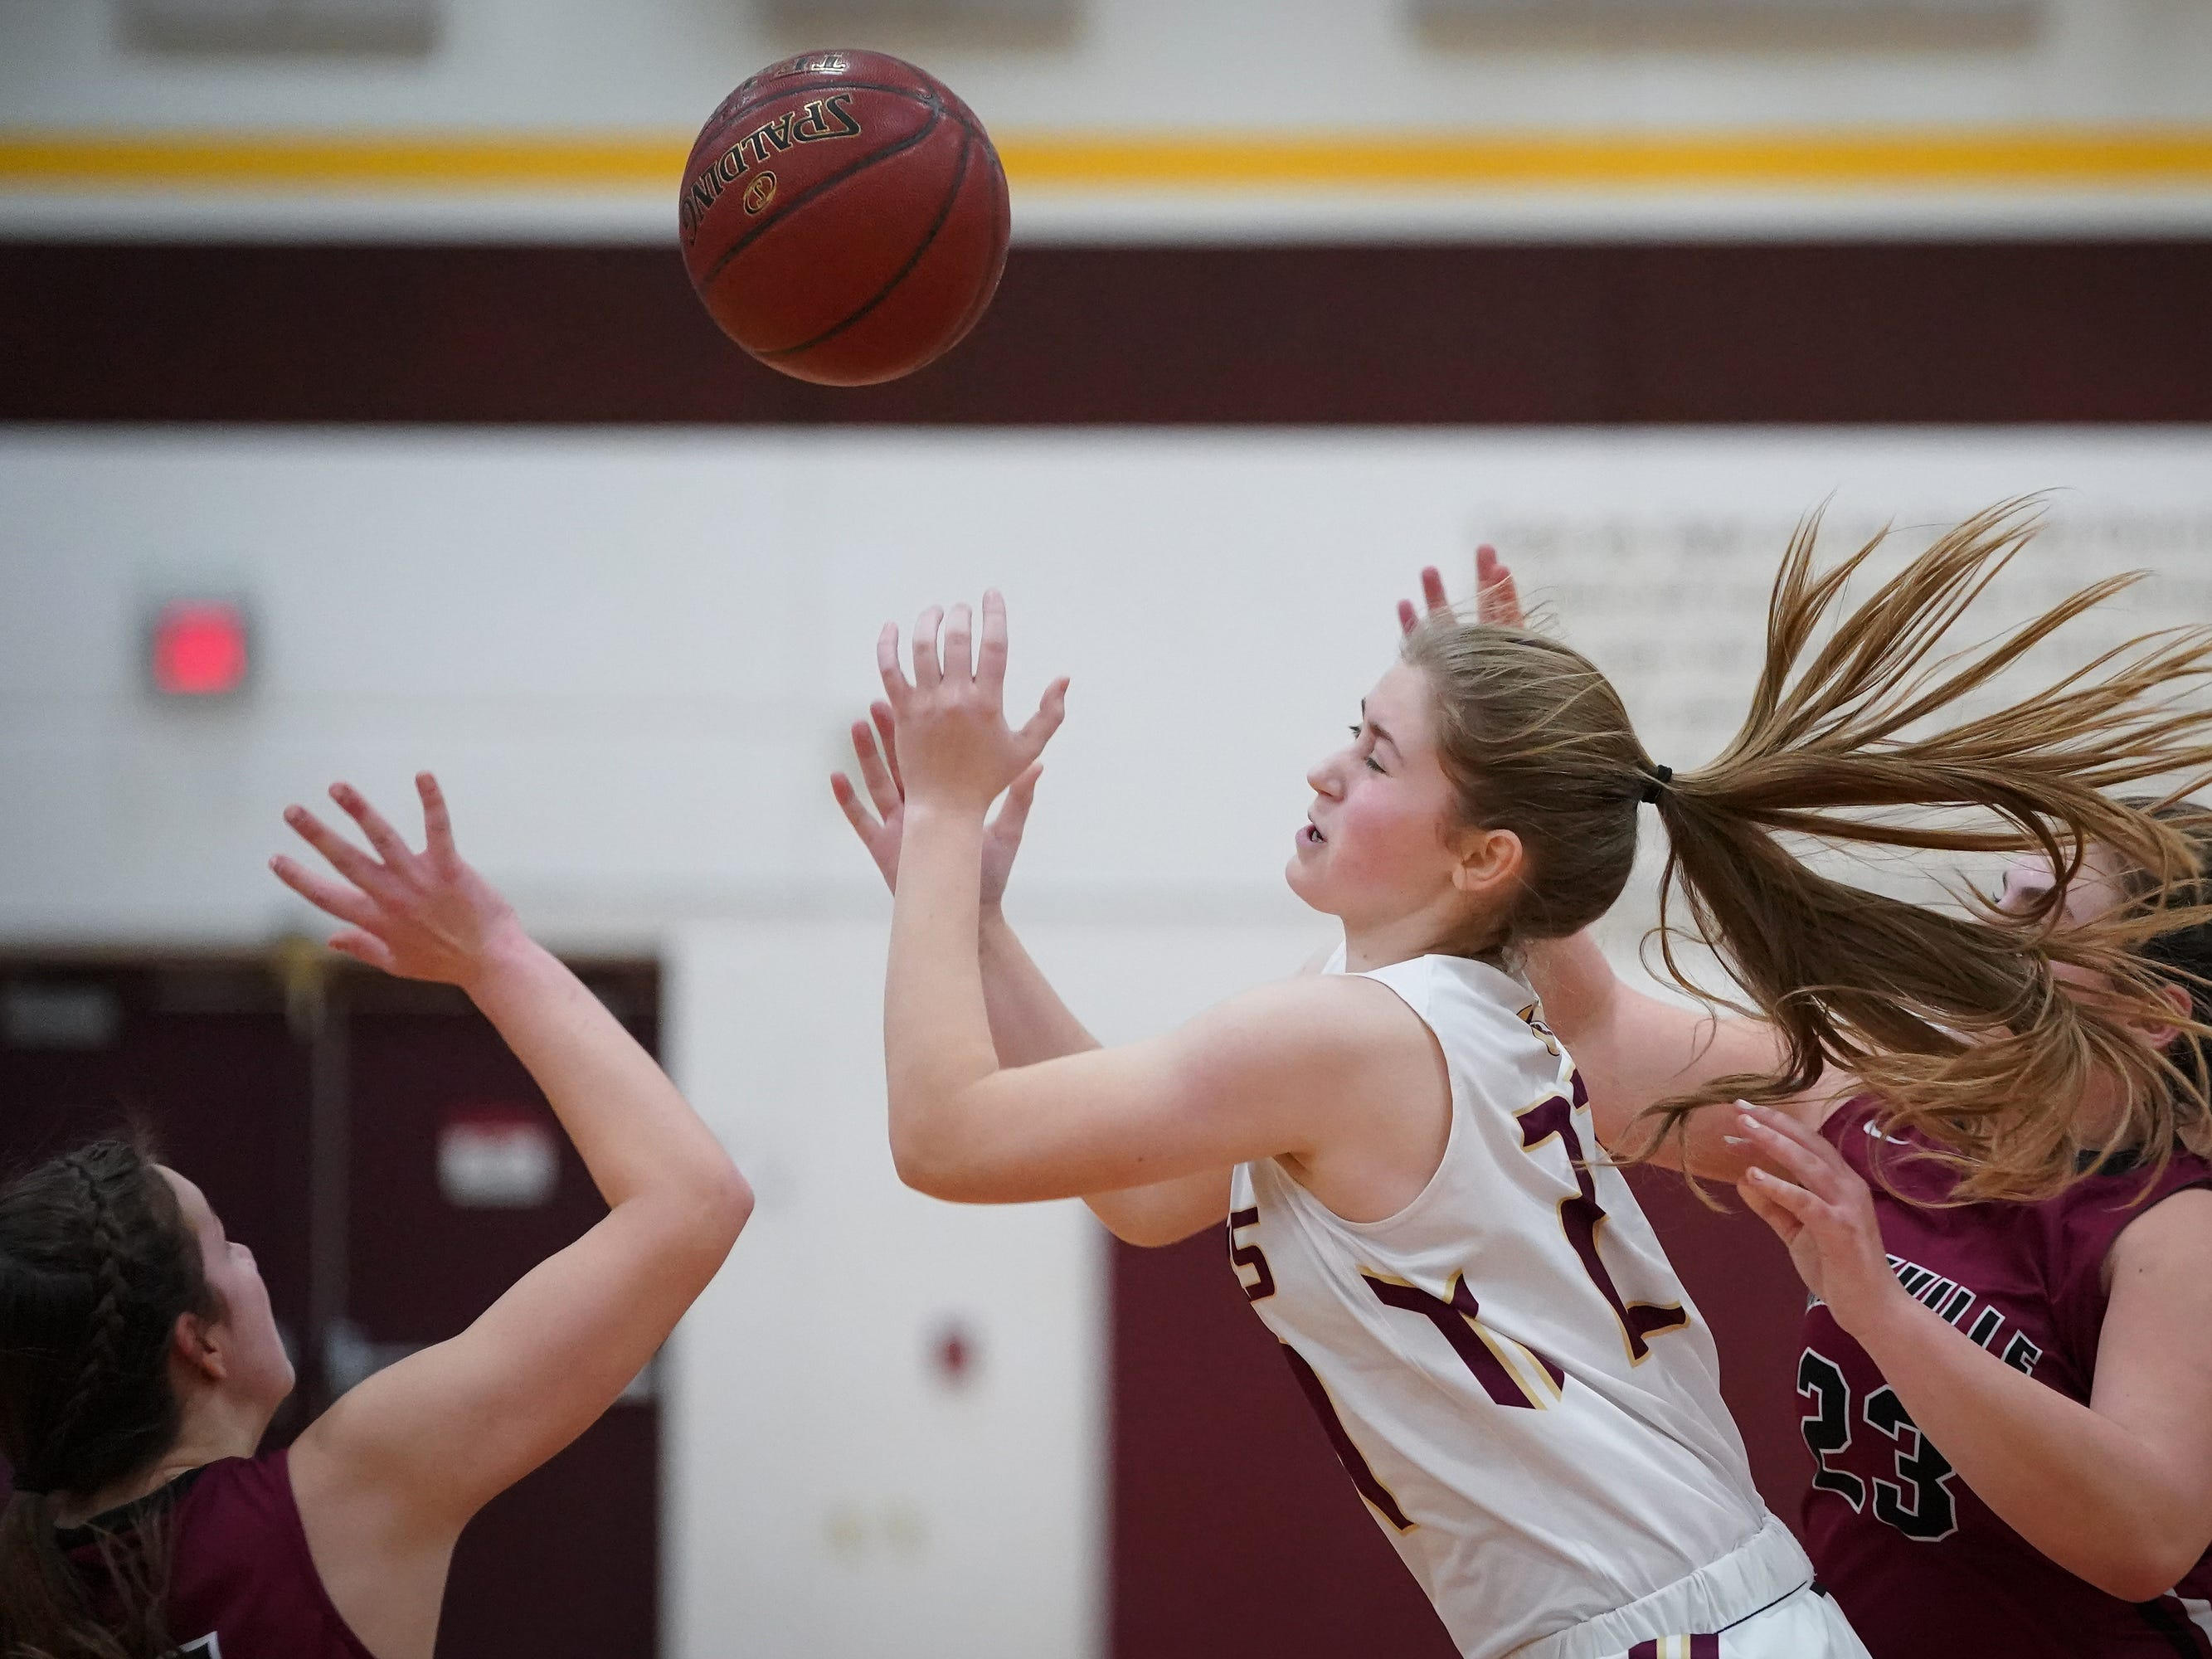 Tabitha Kilgas (21) of Omro fights for a rebound. The Omro Foxes hosted the Mayville Cardinals in a Flyway Conference basketball game Friday evening, January 4, 2019.